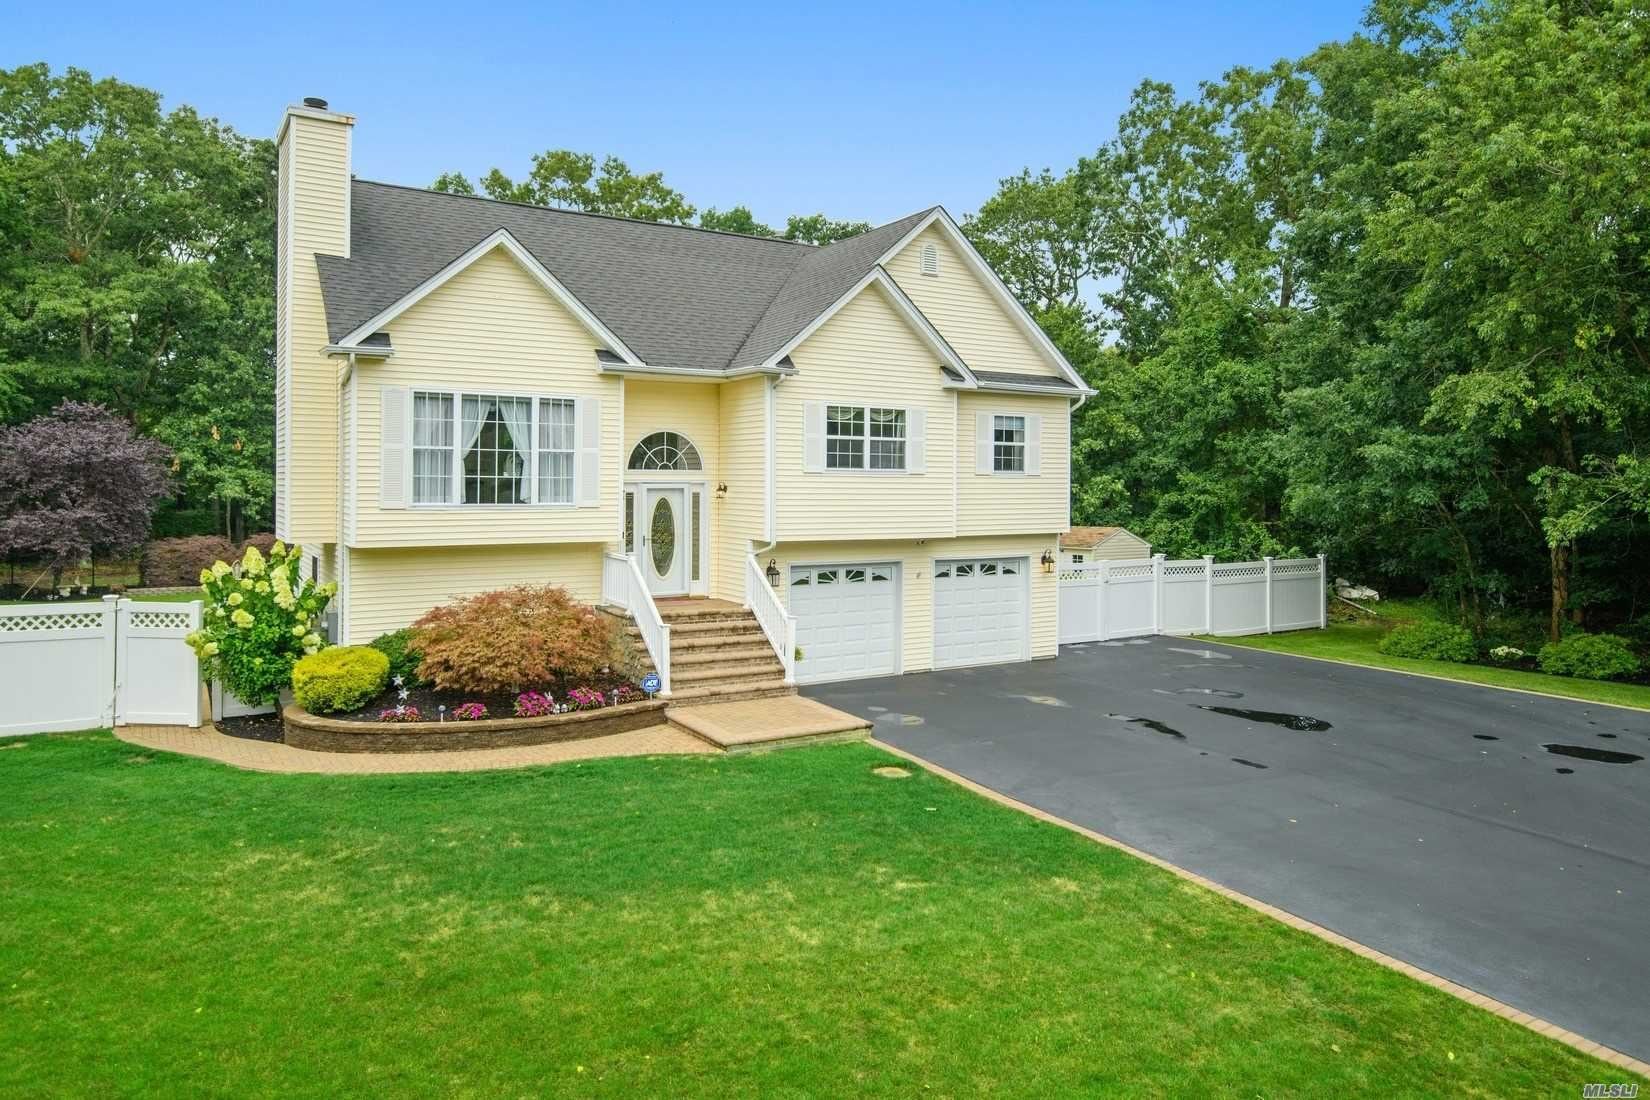 32 James Hawkins Rd, Moriches, NY 11955 - MLS#: 3240296